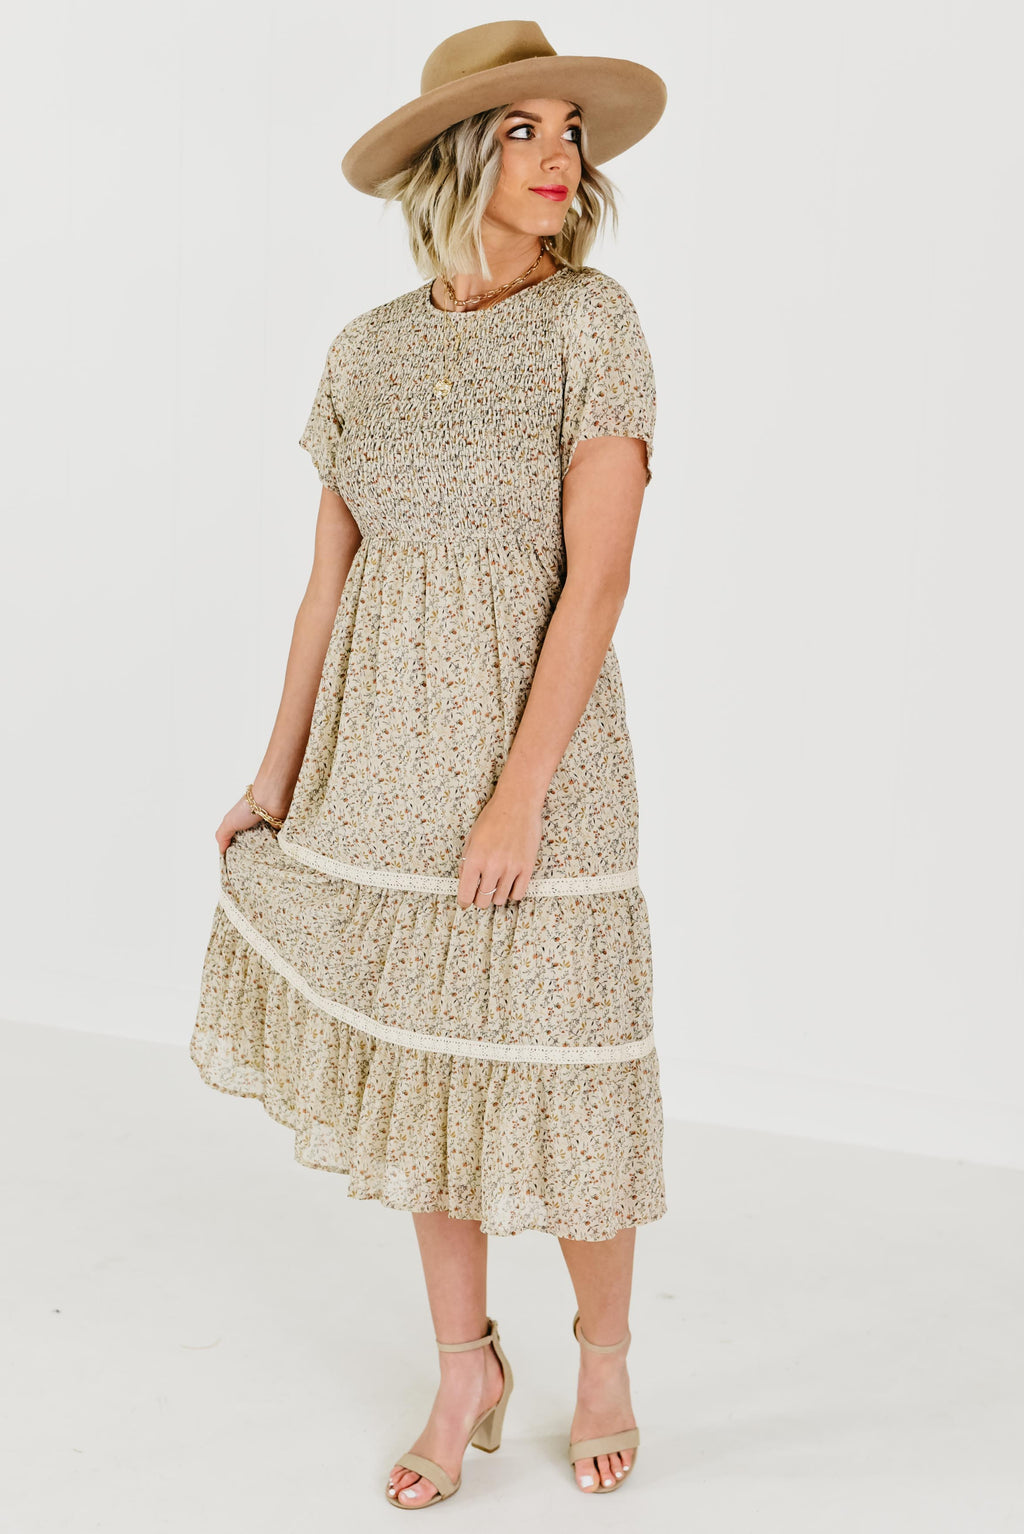 The Zahara Smocked Bodice Dress - Taupe Multi